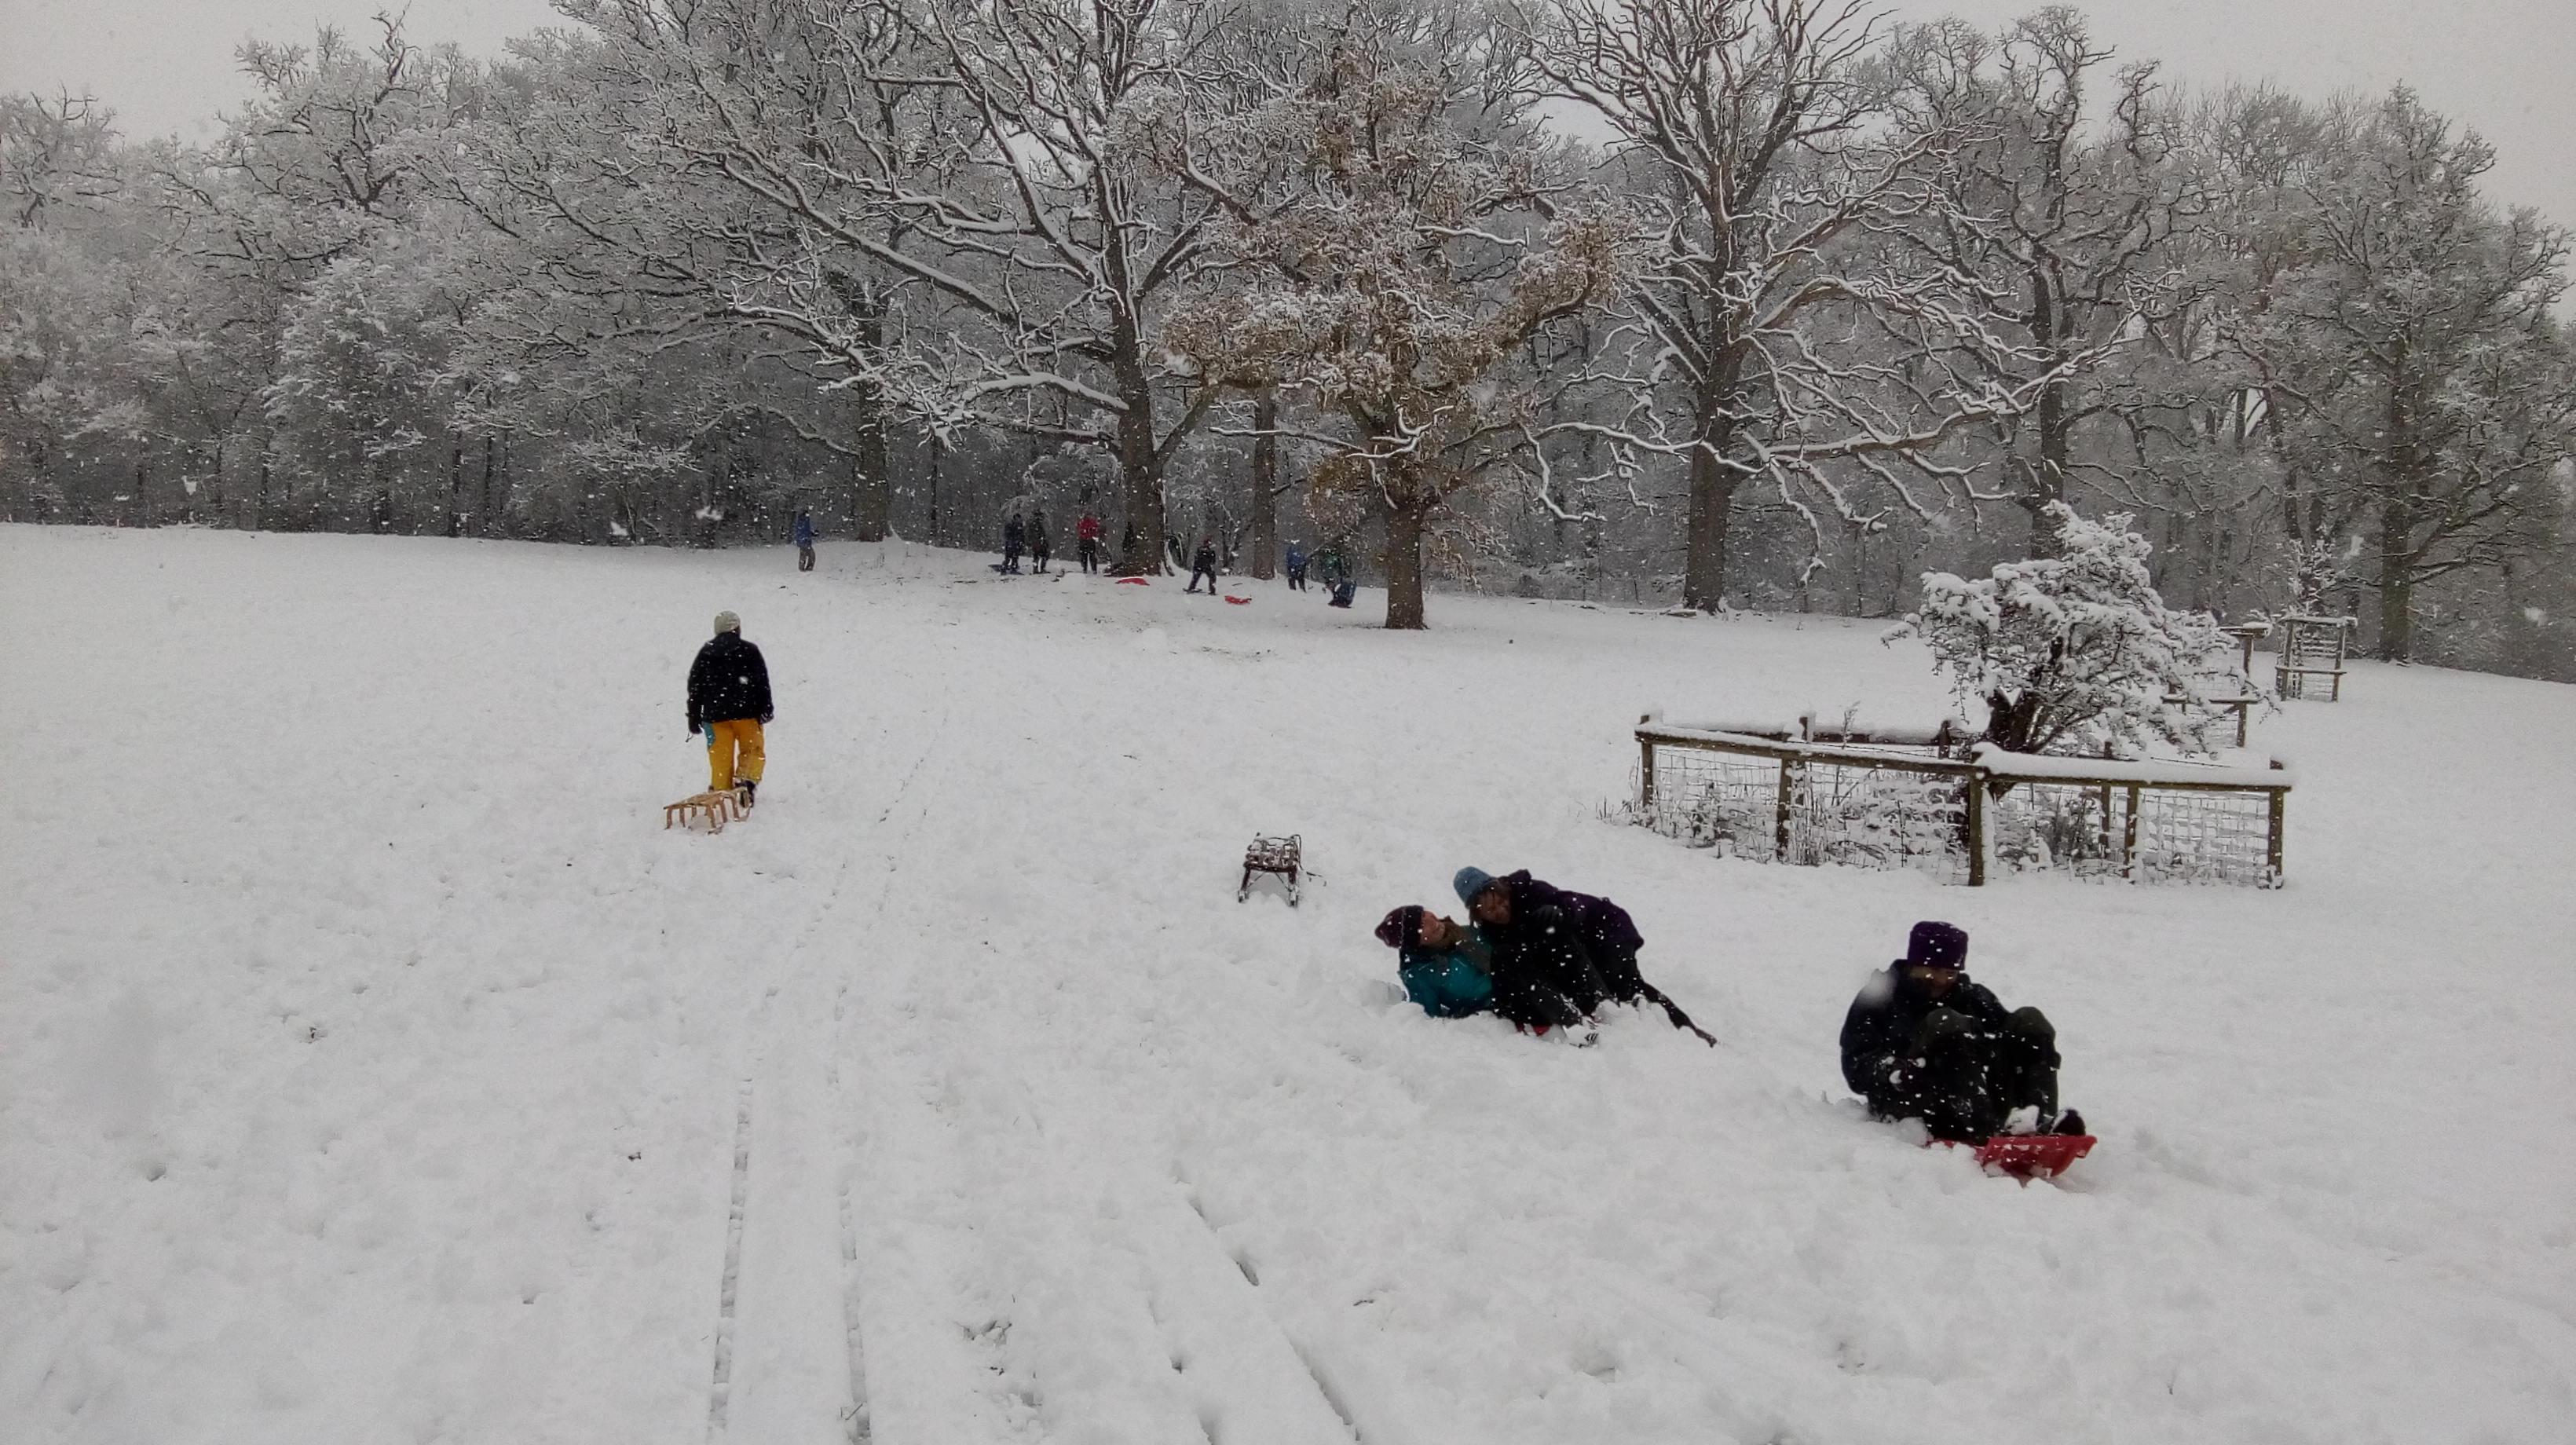 Sledging at the Homend 1